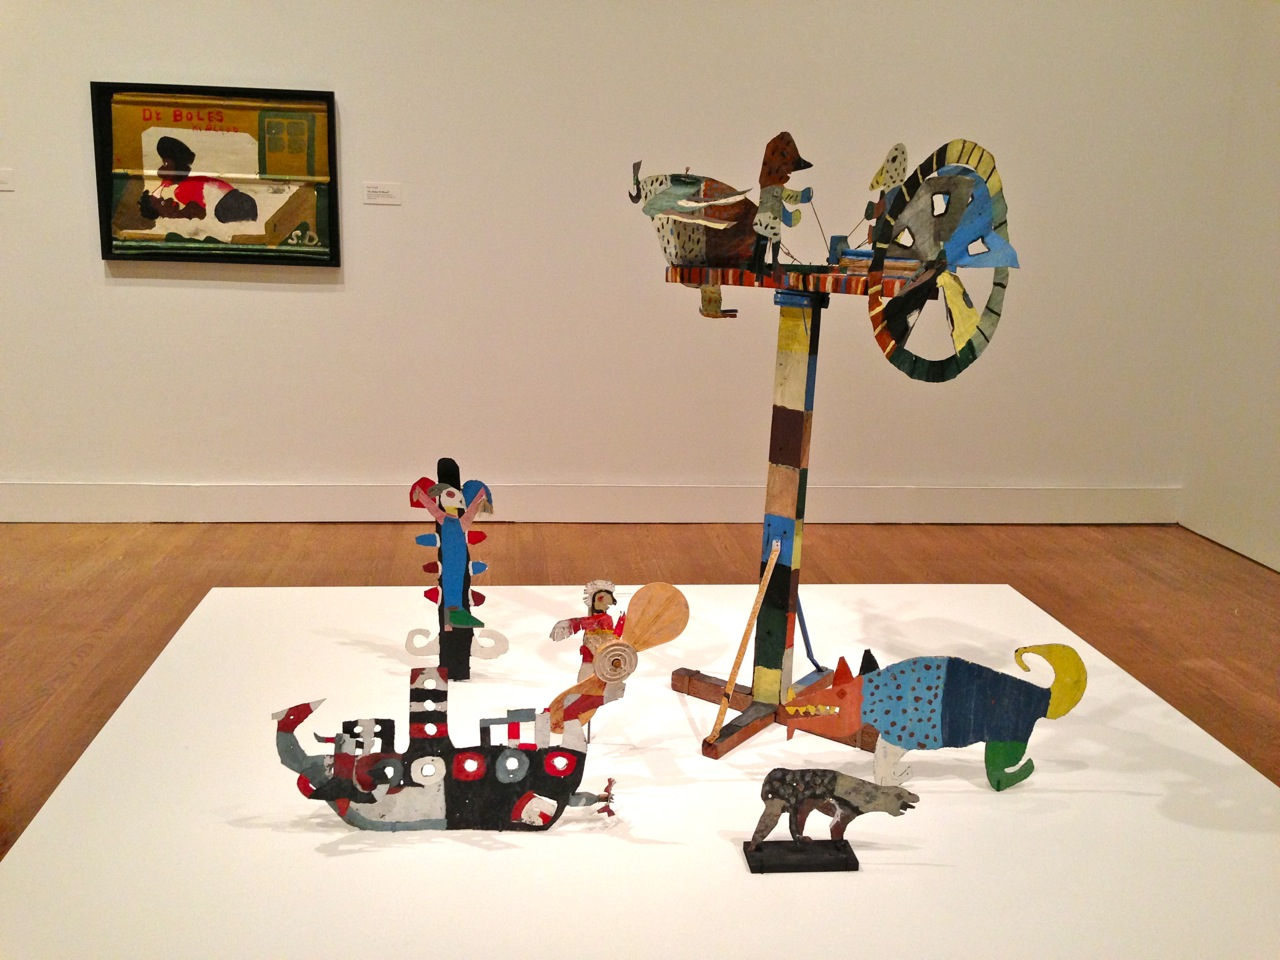 David Butler's whirligigs, critters, and a crucifix are made of galvanized iron, house paint, nails, wire and other everyday materials. (Photo by Michelle Aldredge from The Jill and Sheldon Bonovitz Collection at the Philadelphia Museum of Art)